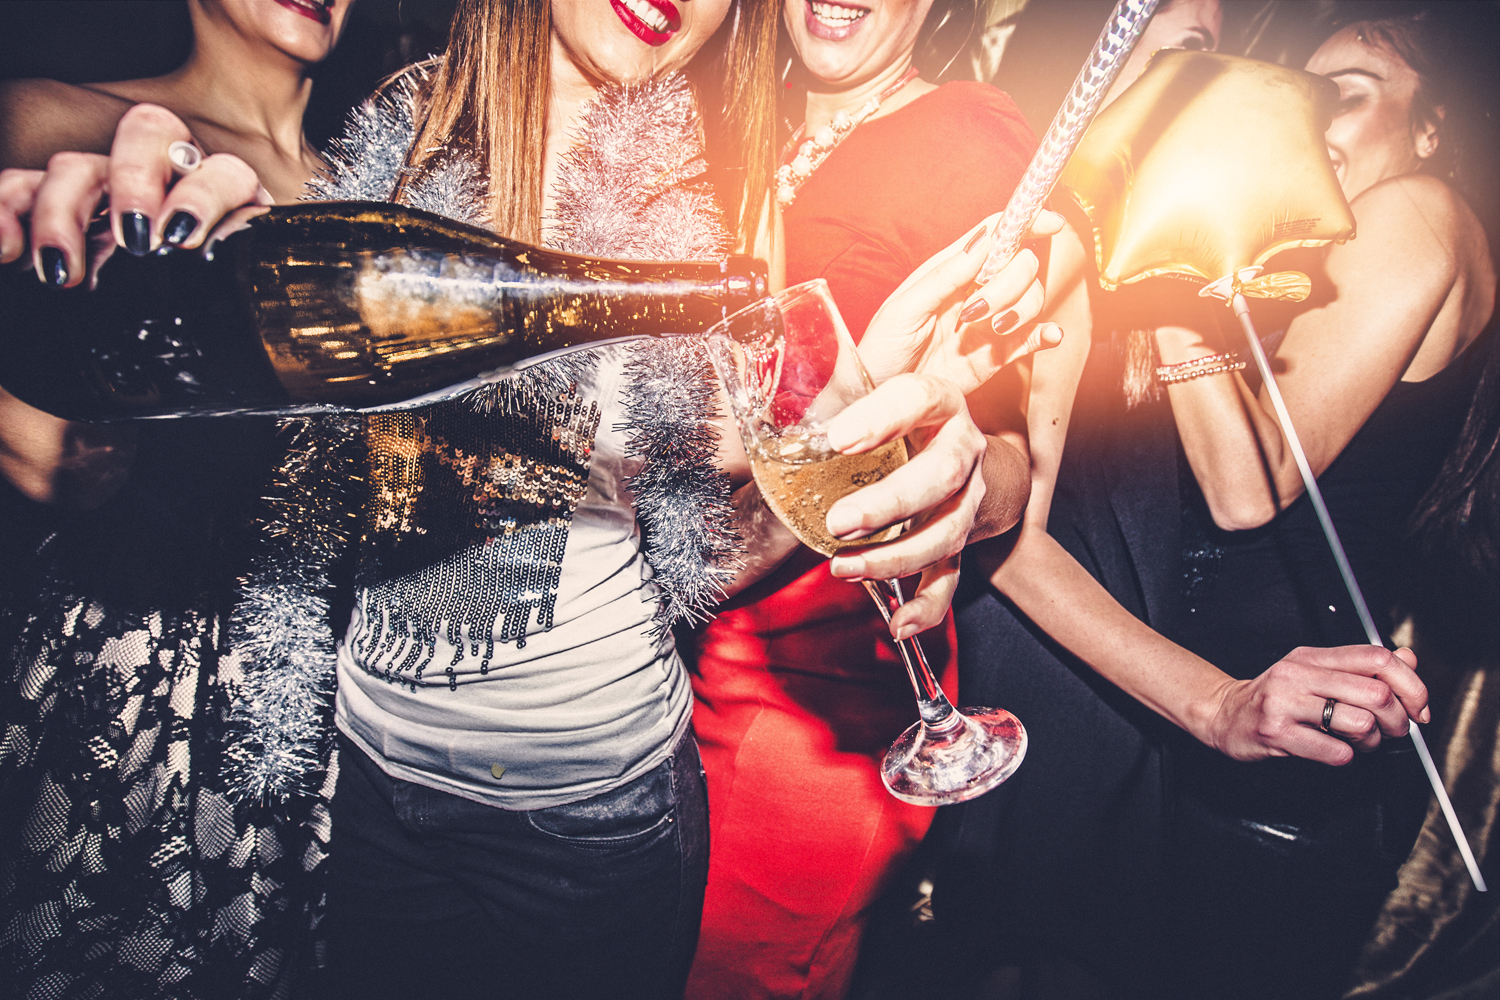 VIP Service - When in Banff get on the guestlist for a wild night out. Be sure to check out the VIP Bottle Service packages for your group.